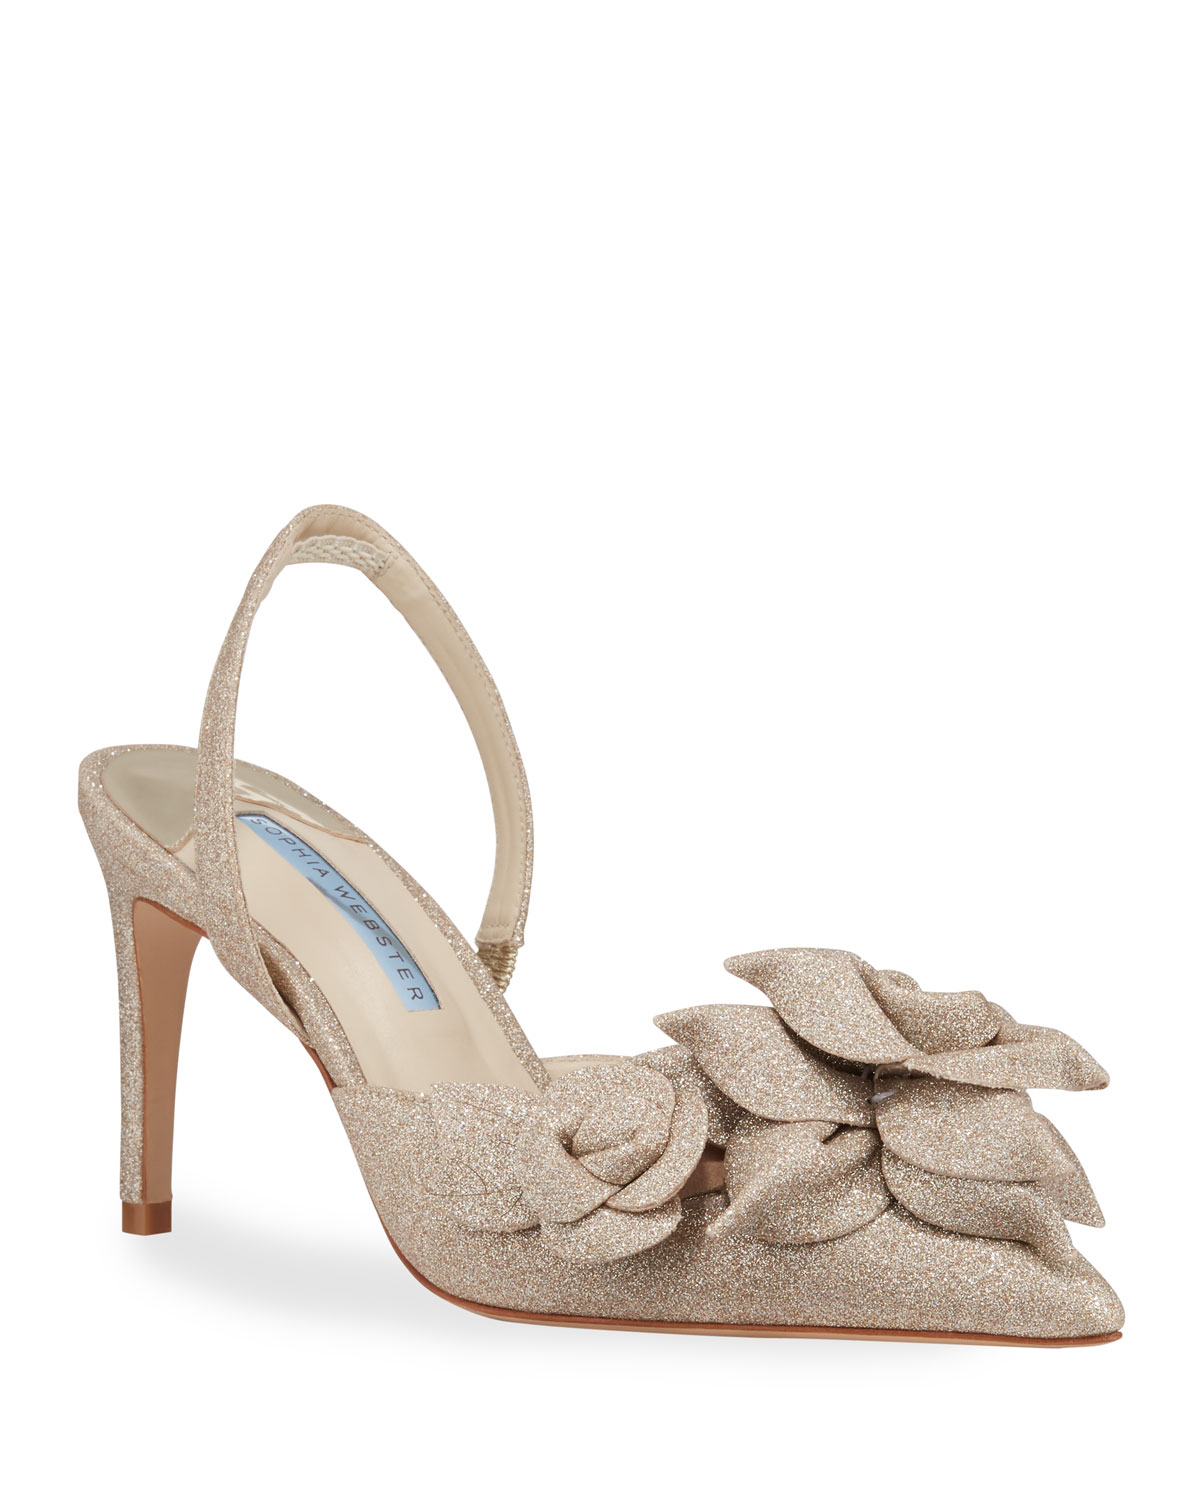 Sophia Webster Jumbo Lilico Mid Slingback Pumps In Champagne